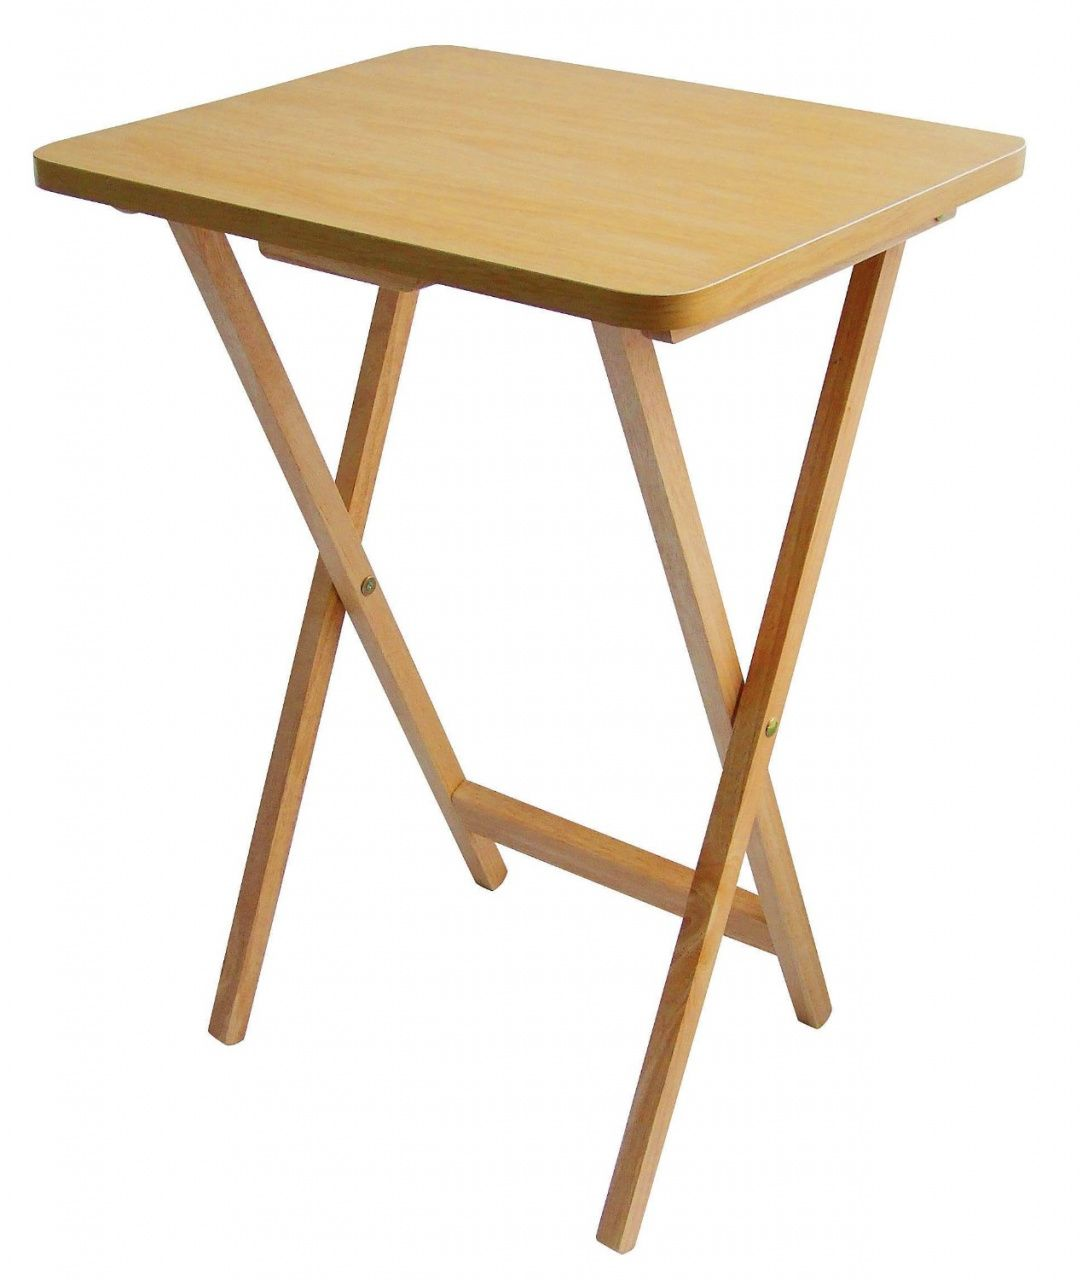 Ikea Small Folding Table Large Home Office Furniture Check More